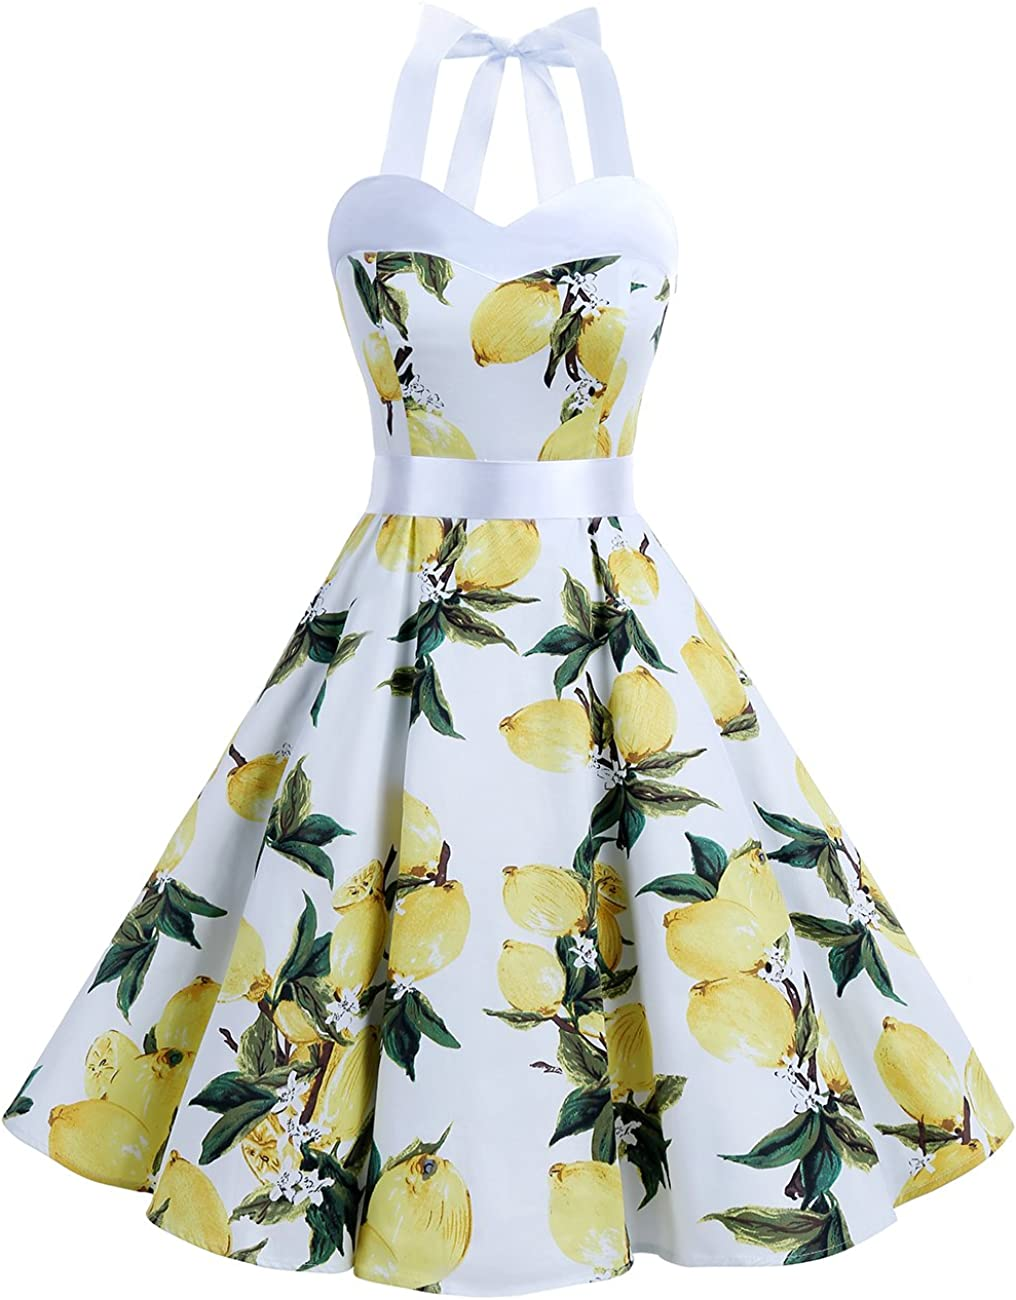 TALLA S. Dresstells® Halter 50s Rockabilly Polka Dots Audrey Dress Retro Cocktail Dress Lemon S